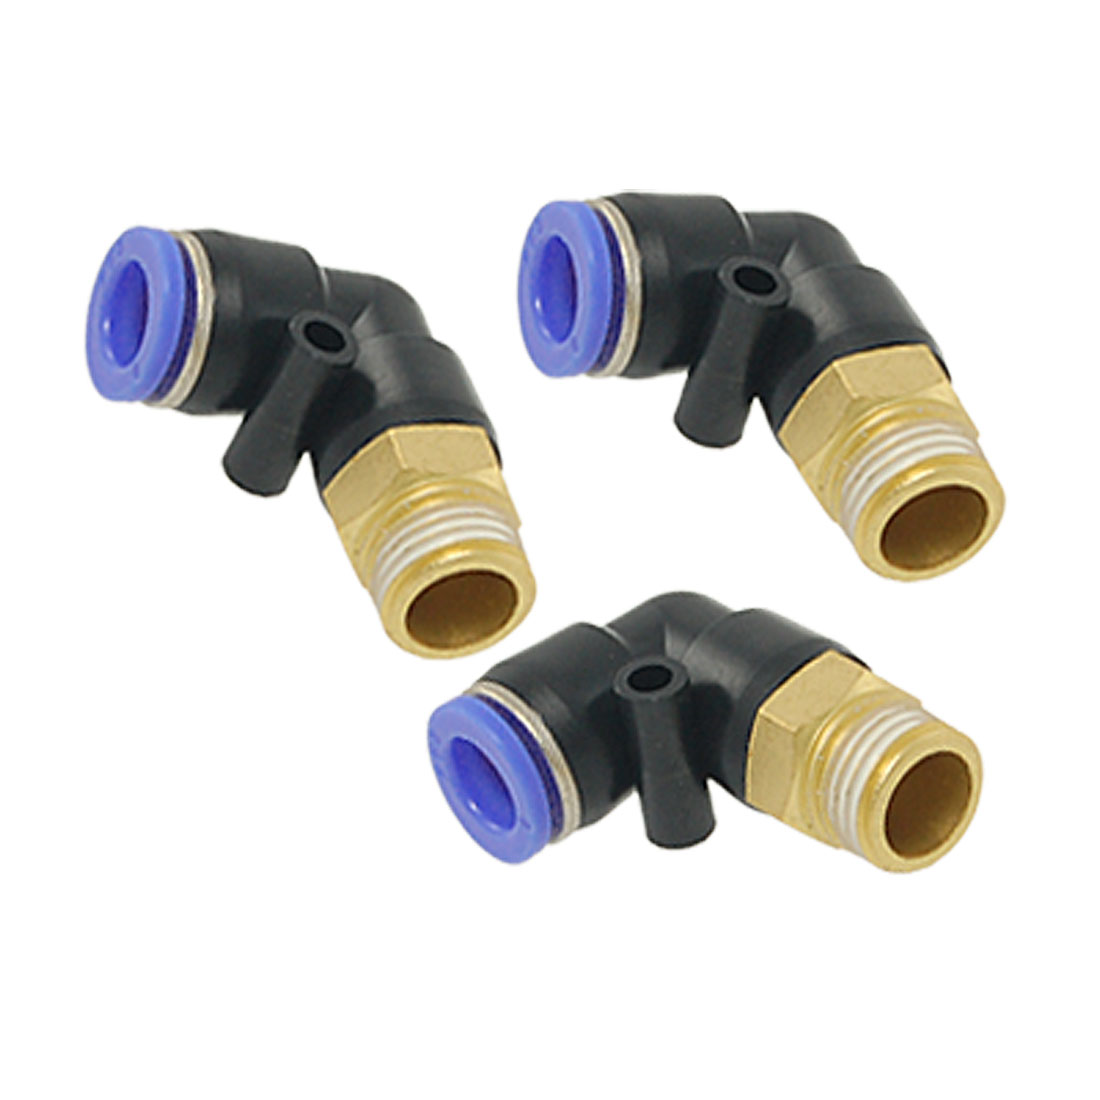 3 Pcs 8mm OD Tubing Air Pneumatic Elbow Quick Fittings